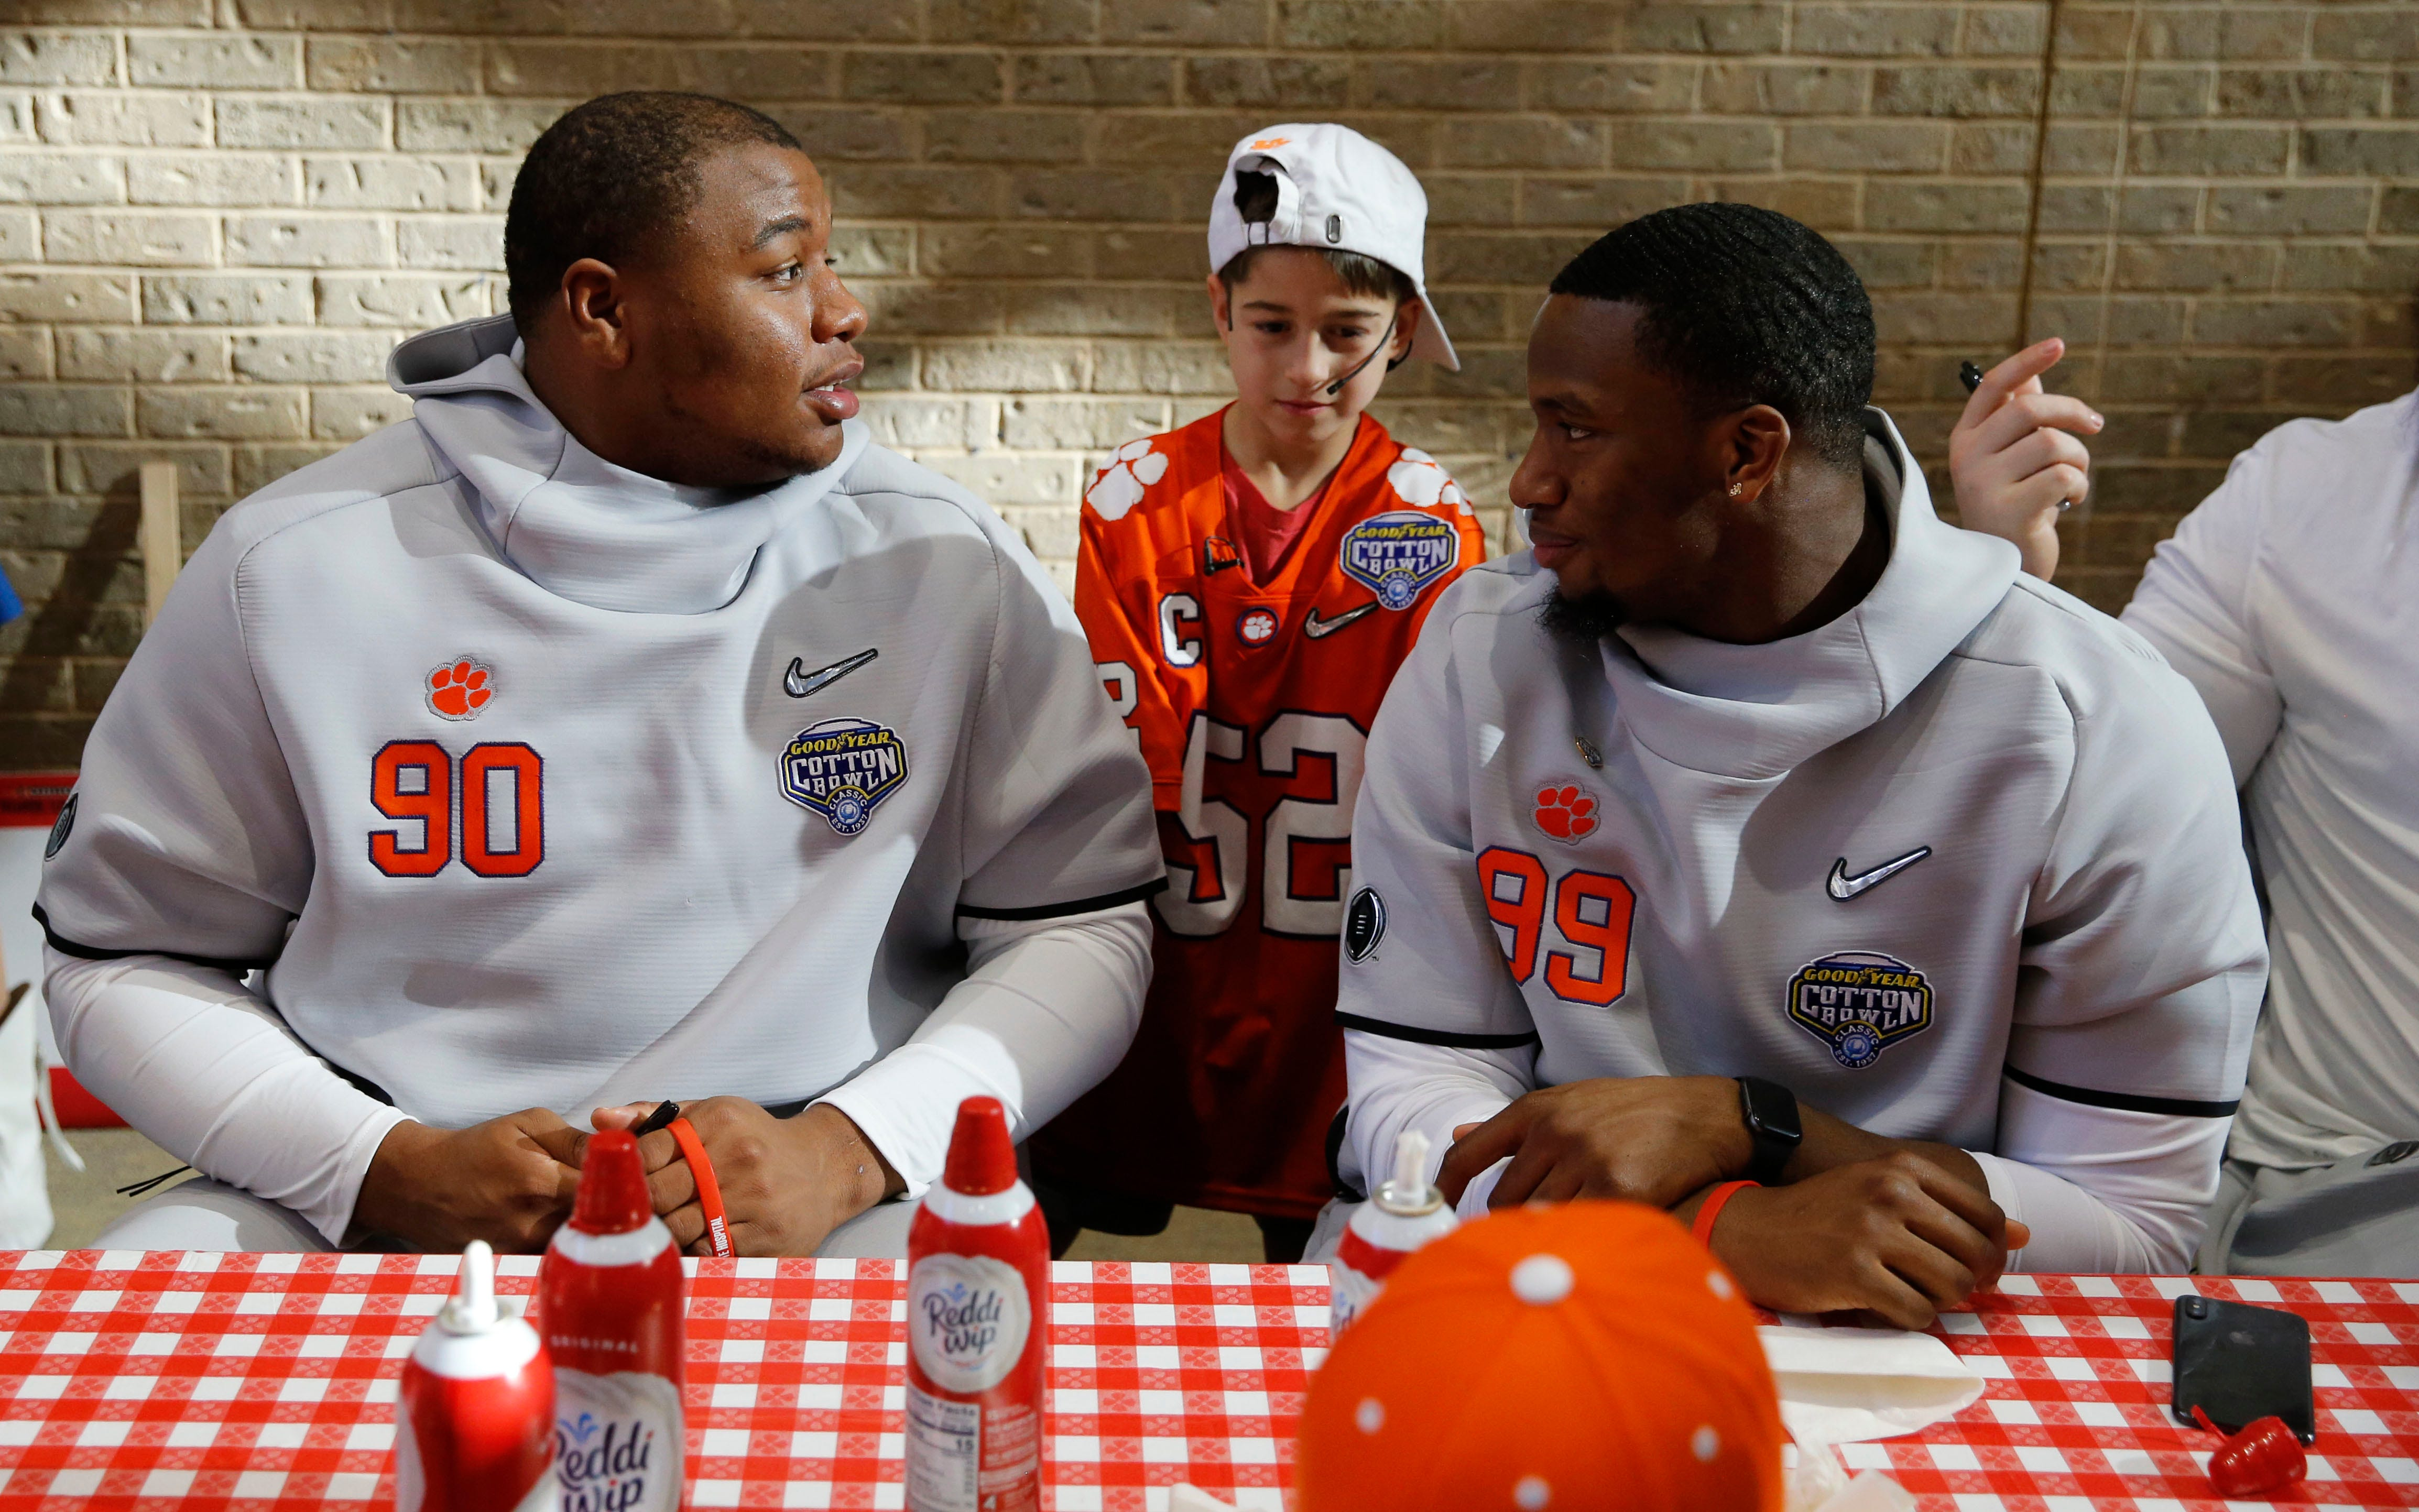 The Latest: NCAA confirms suspension for Clemson DT Lawrence